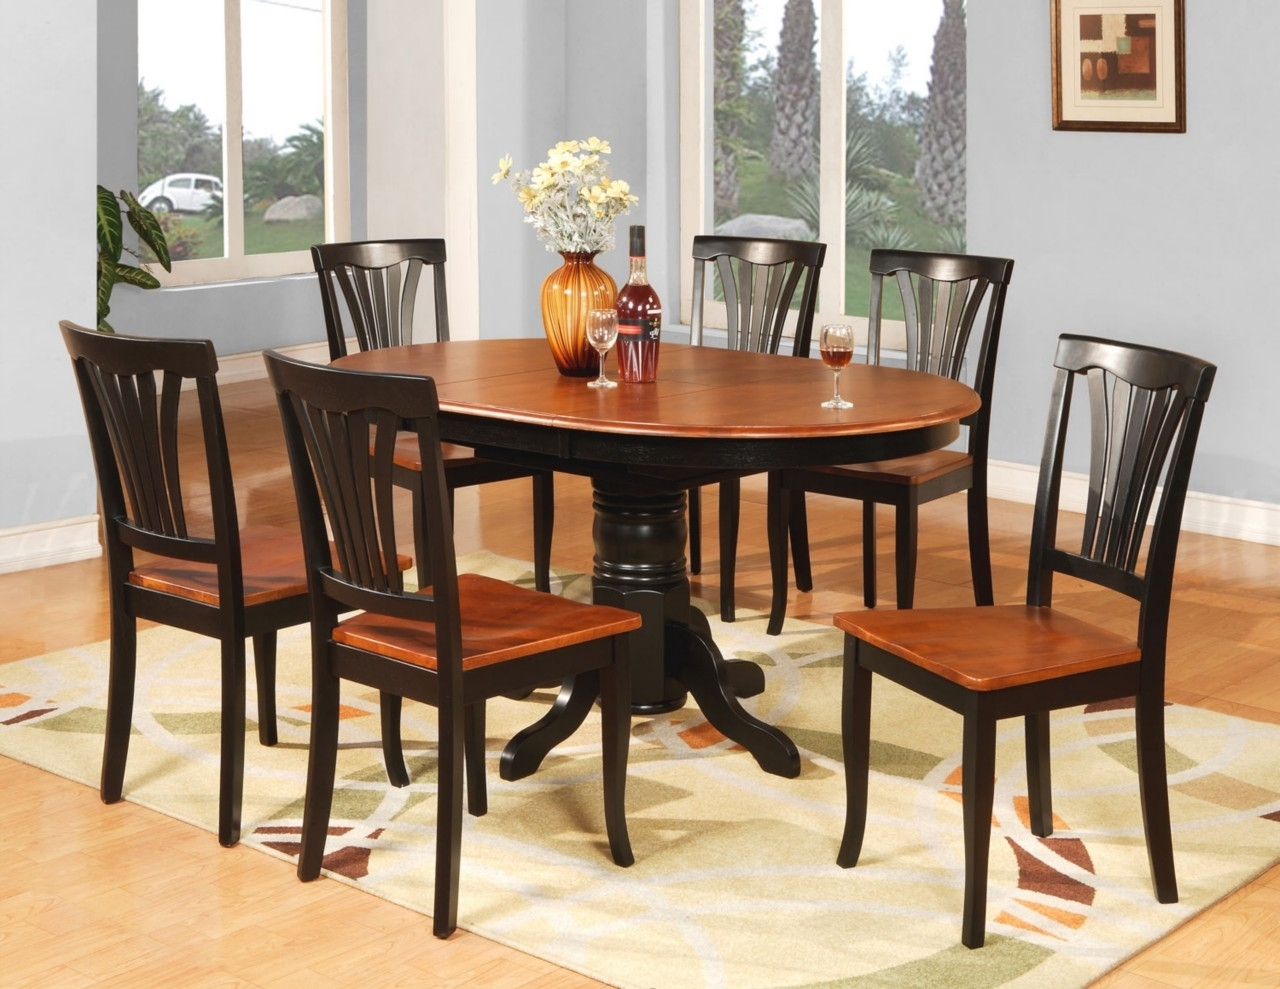 Oval Shape Pedestal Dining Table For 6 With Brown Painted Also Teak With Regard To Popular Wood Dining Tables And 6 Chairs (View 13 of 25)